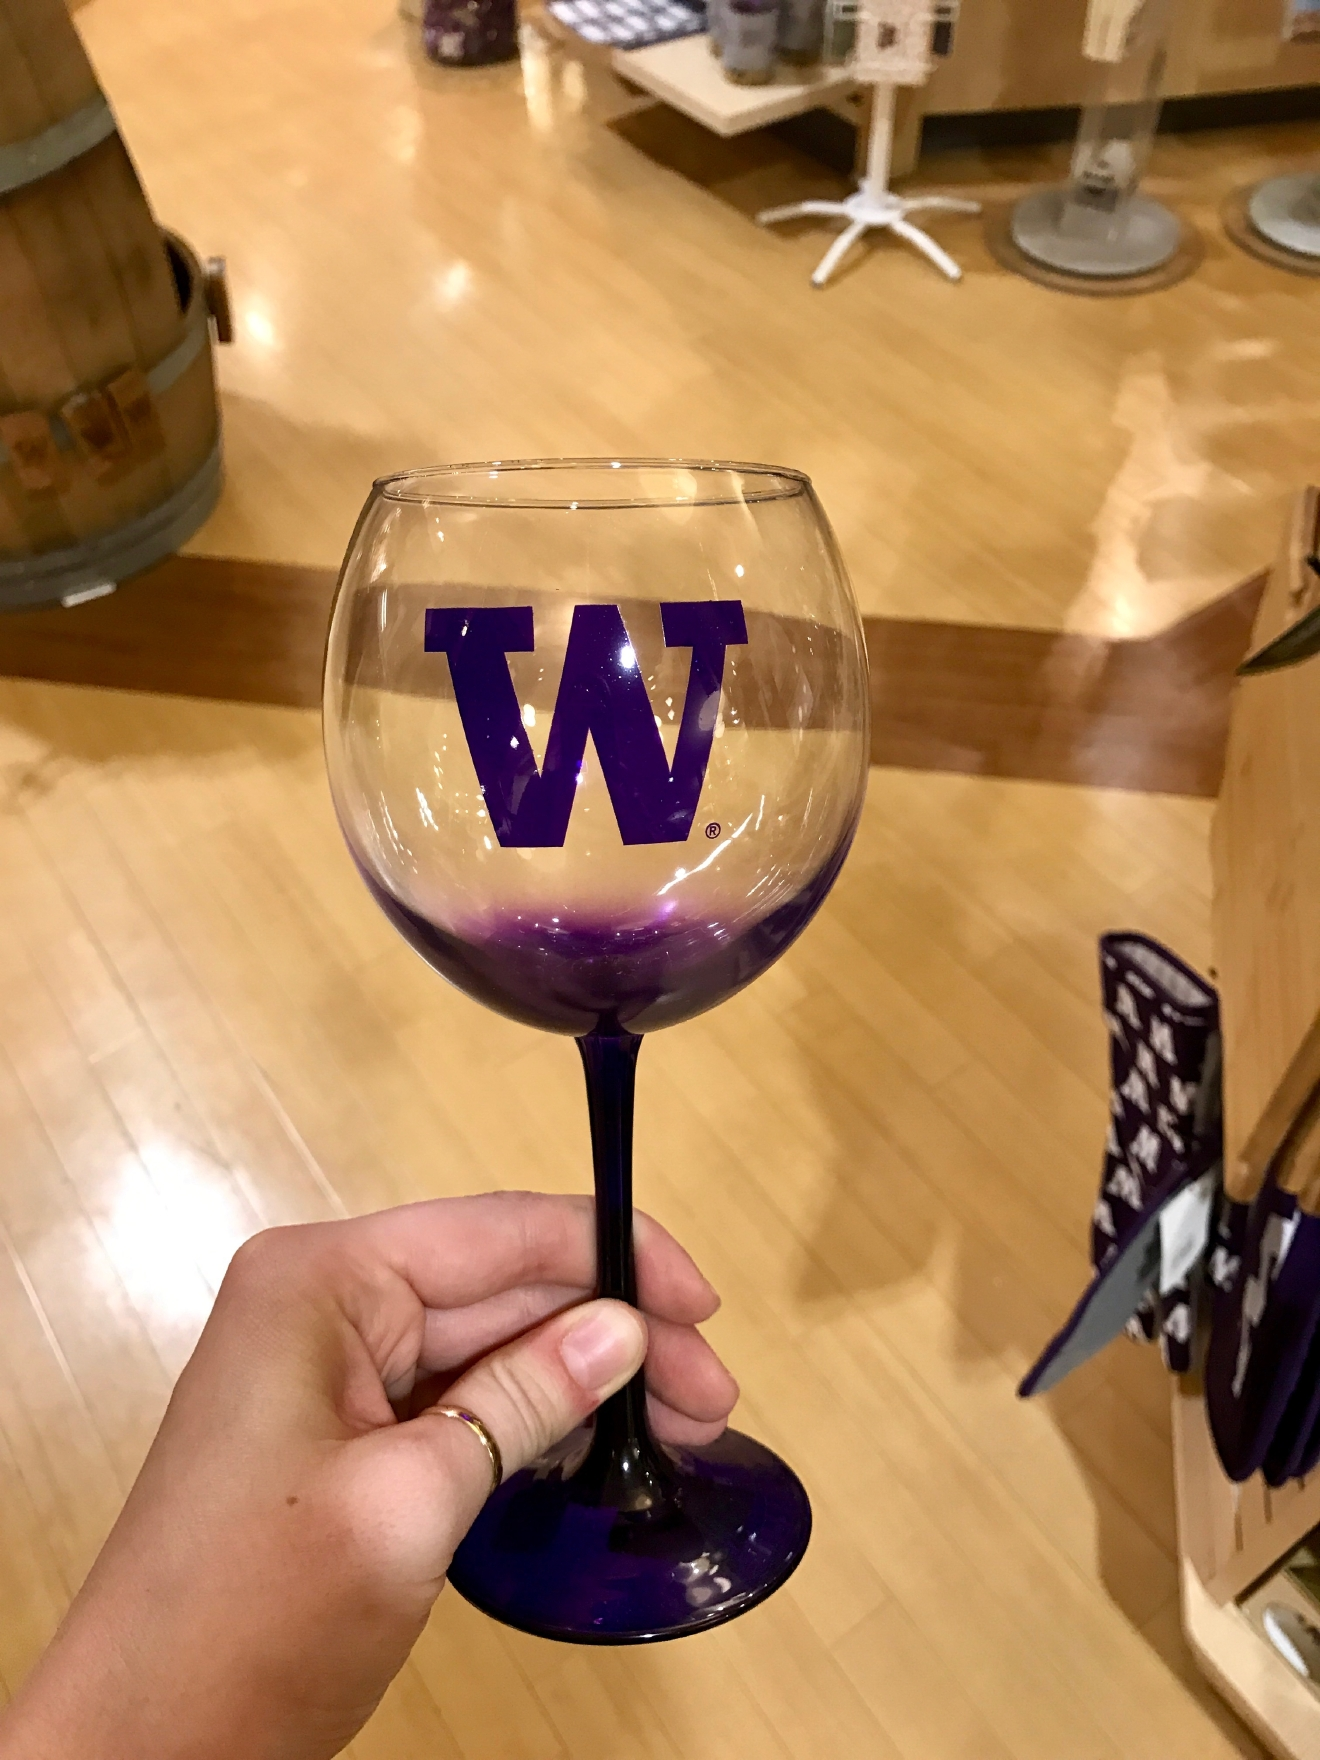 UW Wine Glass - $16.95                                          Whether you're a current student, alum, or just *love* the Dawgs, it's a pretty exciting time to be a Husky fan right now. Just to catch you up, the University of Washington football team is having one of their best seasons in years, and will be playing the Peach Bowl in Atlanta on December 31st. If you know a Dawg fan, they're probably salivating at the mouth right about now. Which is why it's a perfect time to give them a themed gift! Here are some of the coolest Husky gear we saw at the University Bookstore on the Avenue during our last visit. Pro Tip: They're open 10 a.m. - 7 p.m. on Christmas Eve! (Image: Britt Thorson / Seattle Refined)